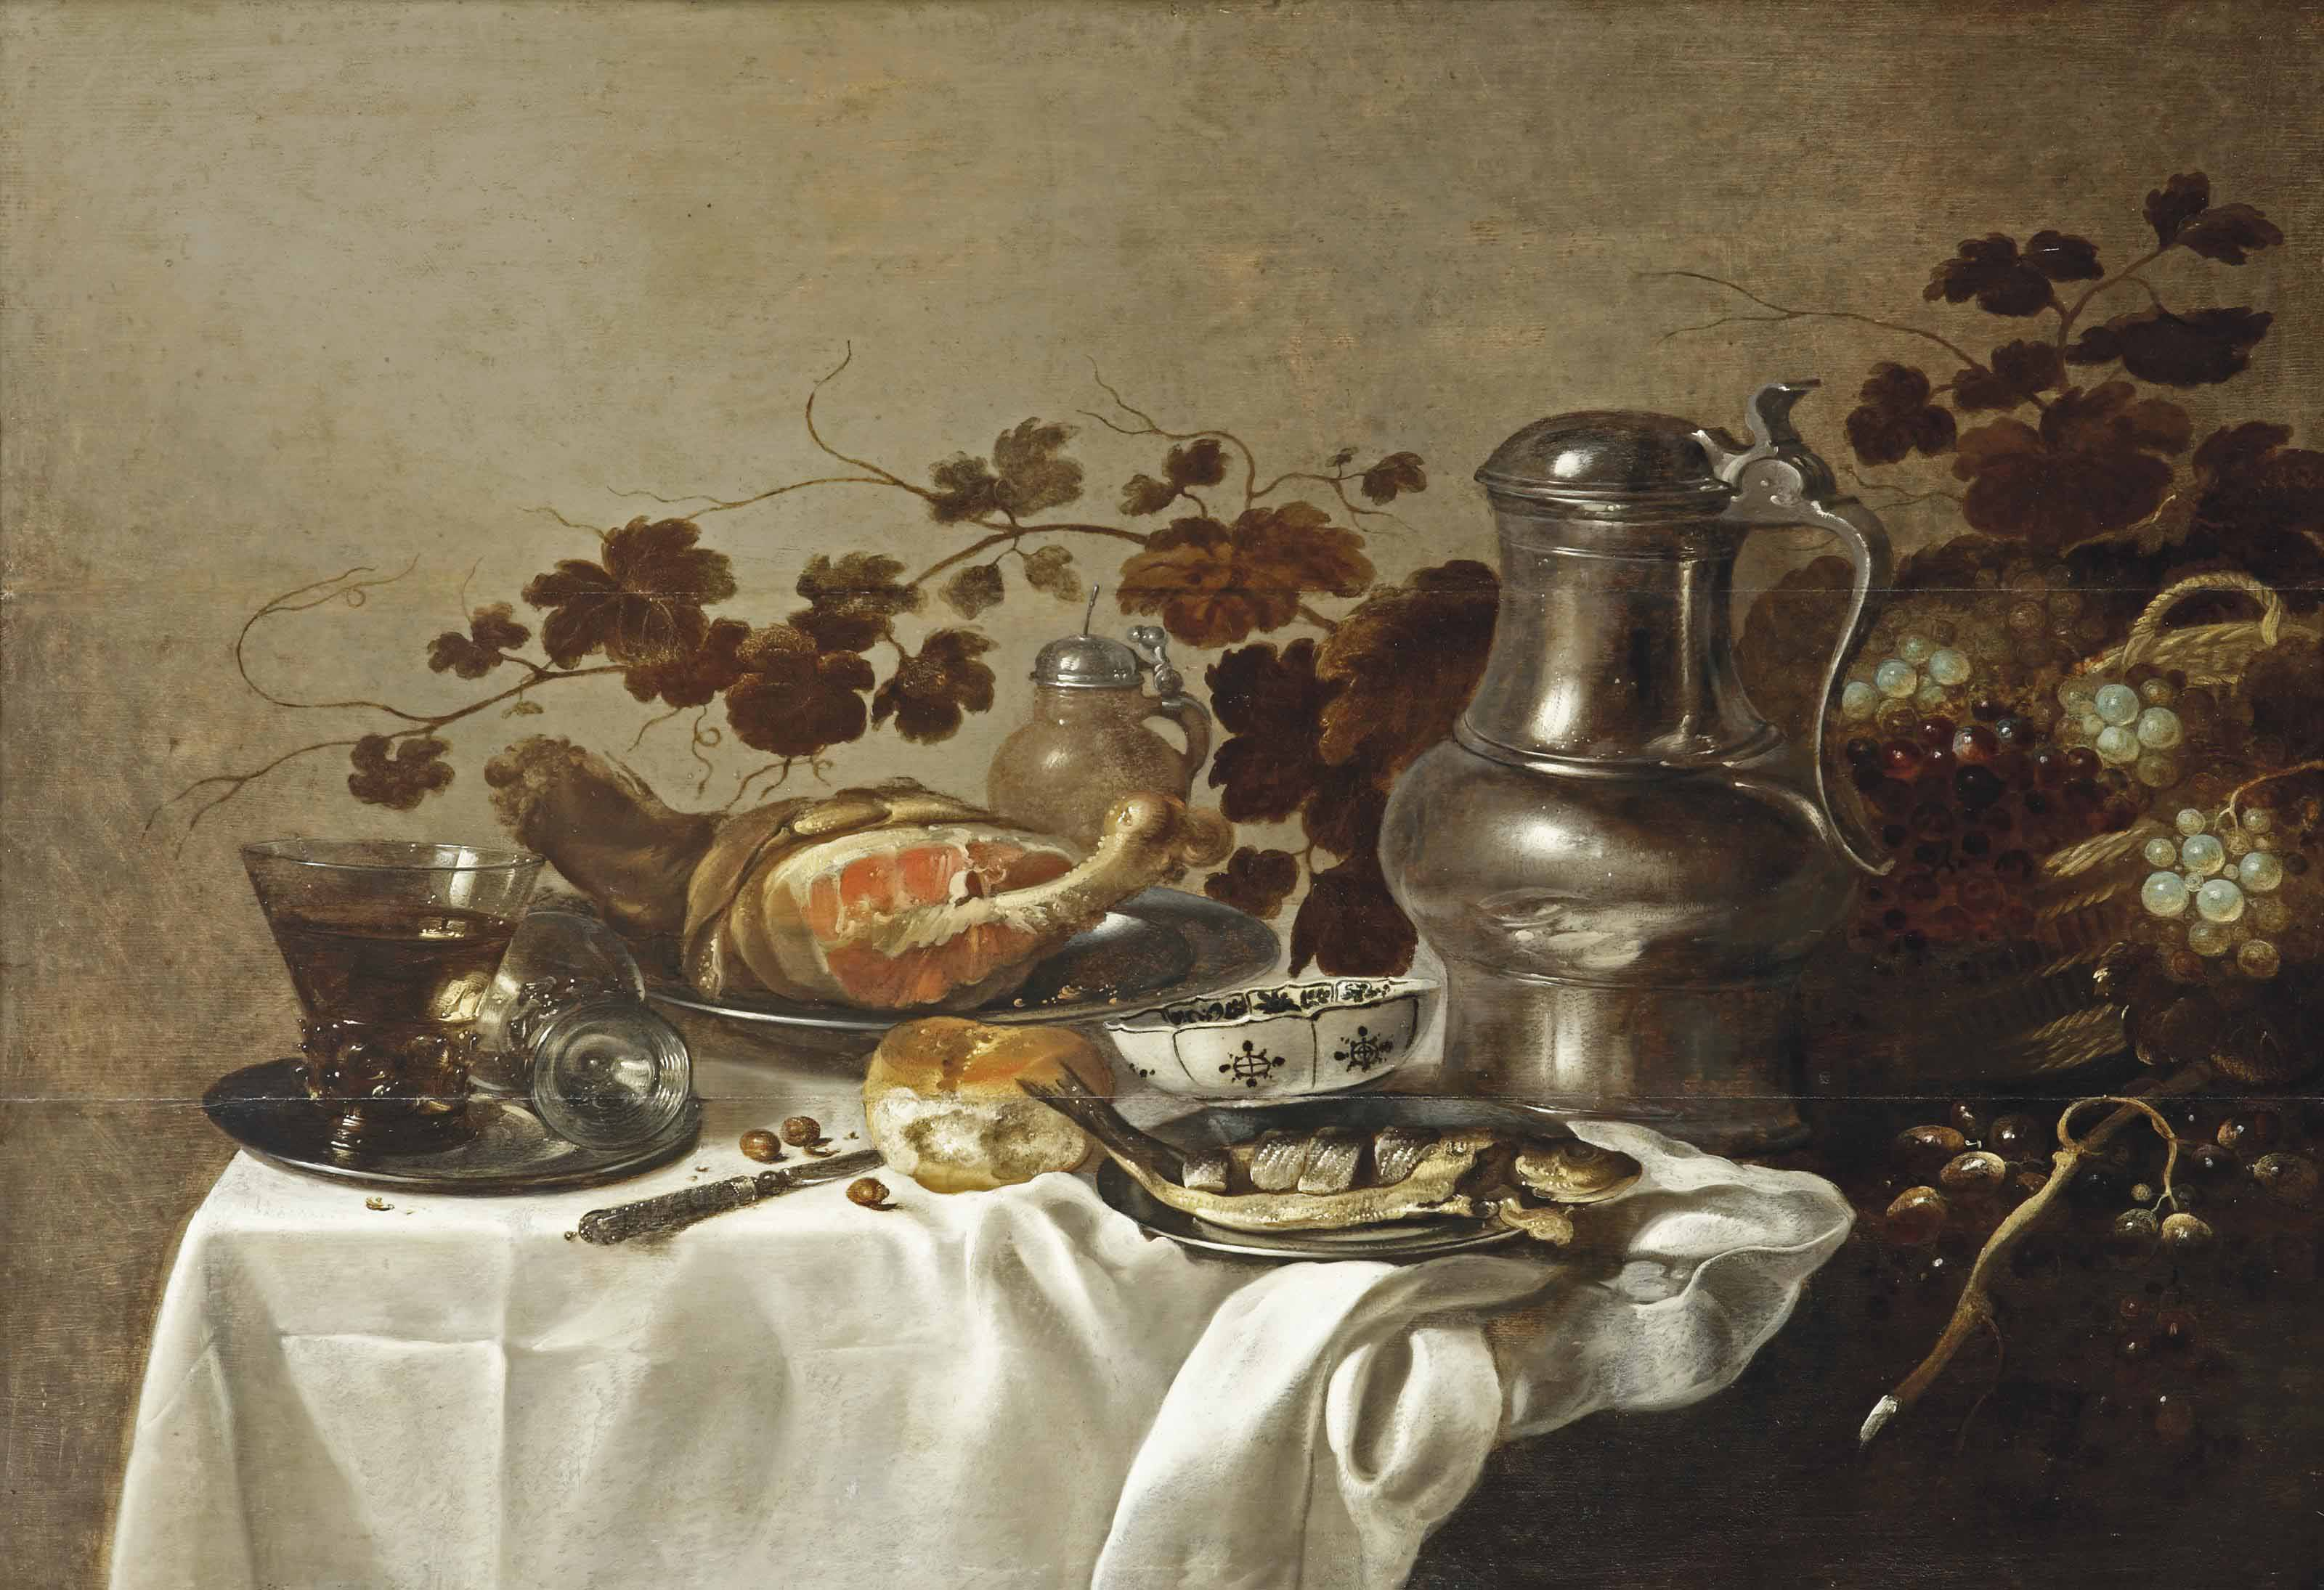 A silver plate with two Roemers, a sliced ham and fish, a 'wan-li' porcelain bowl, bread, a tin jug and wicker basket with grapes and vines, all on a partially draped table